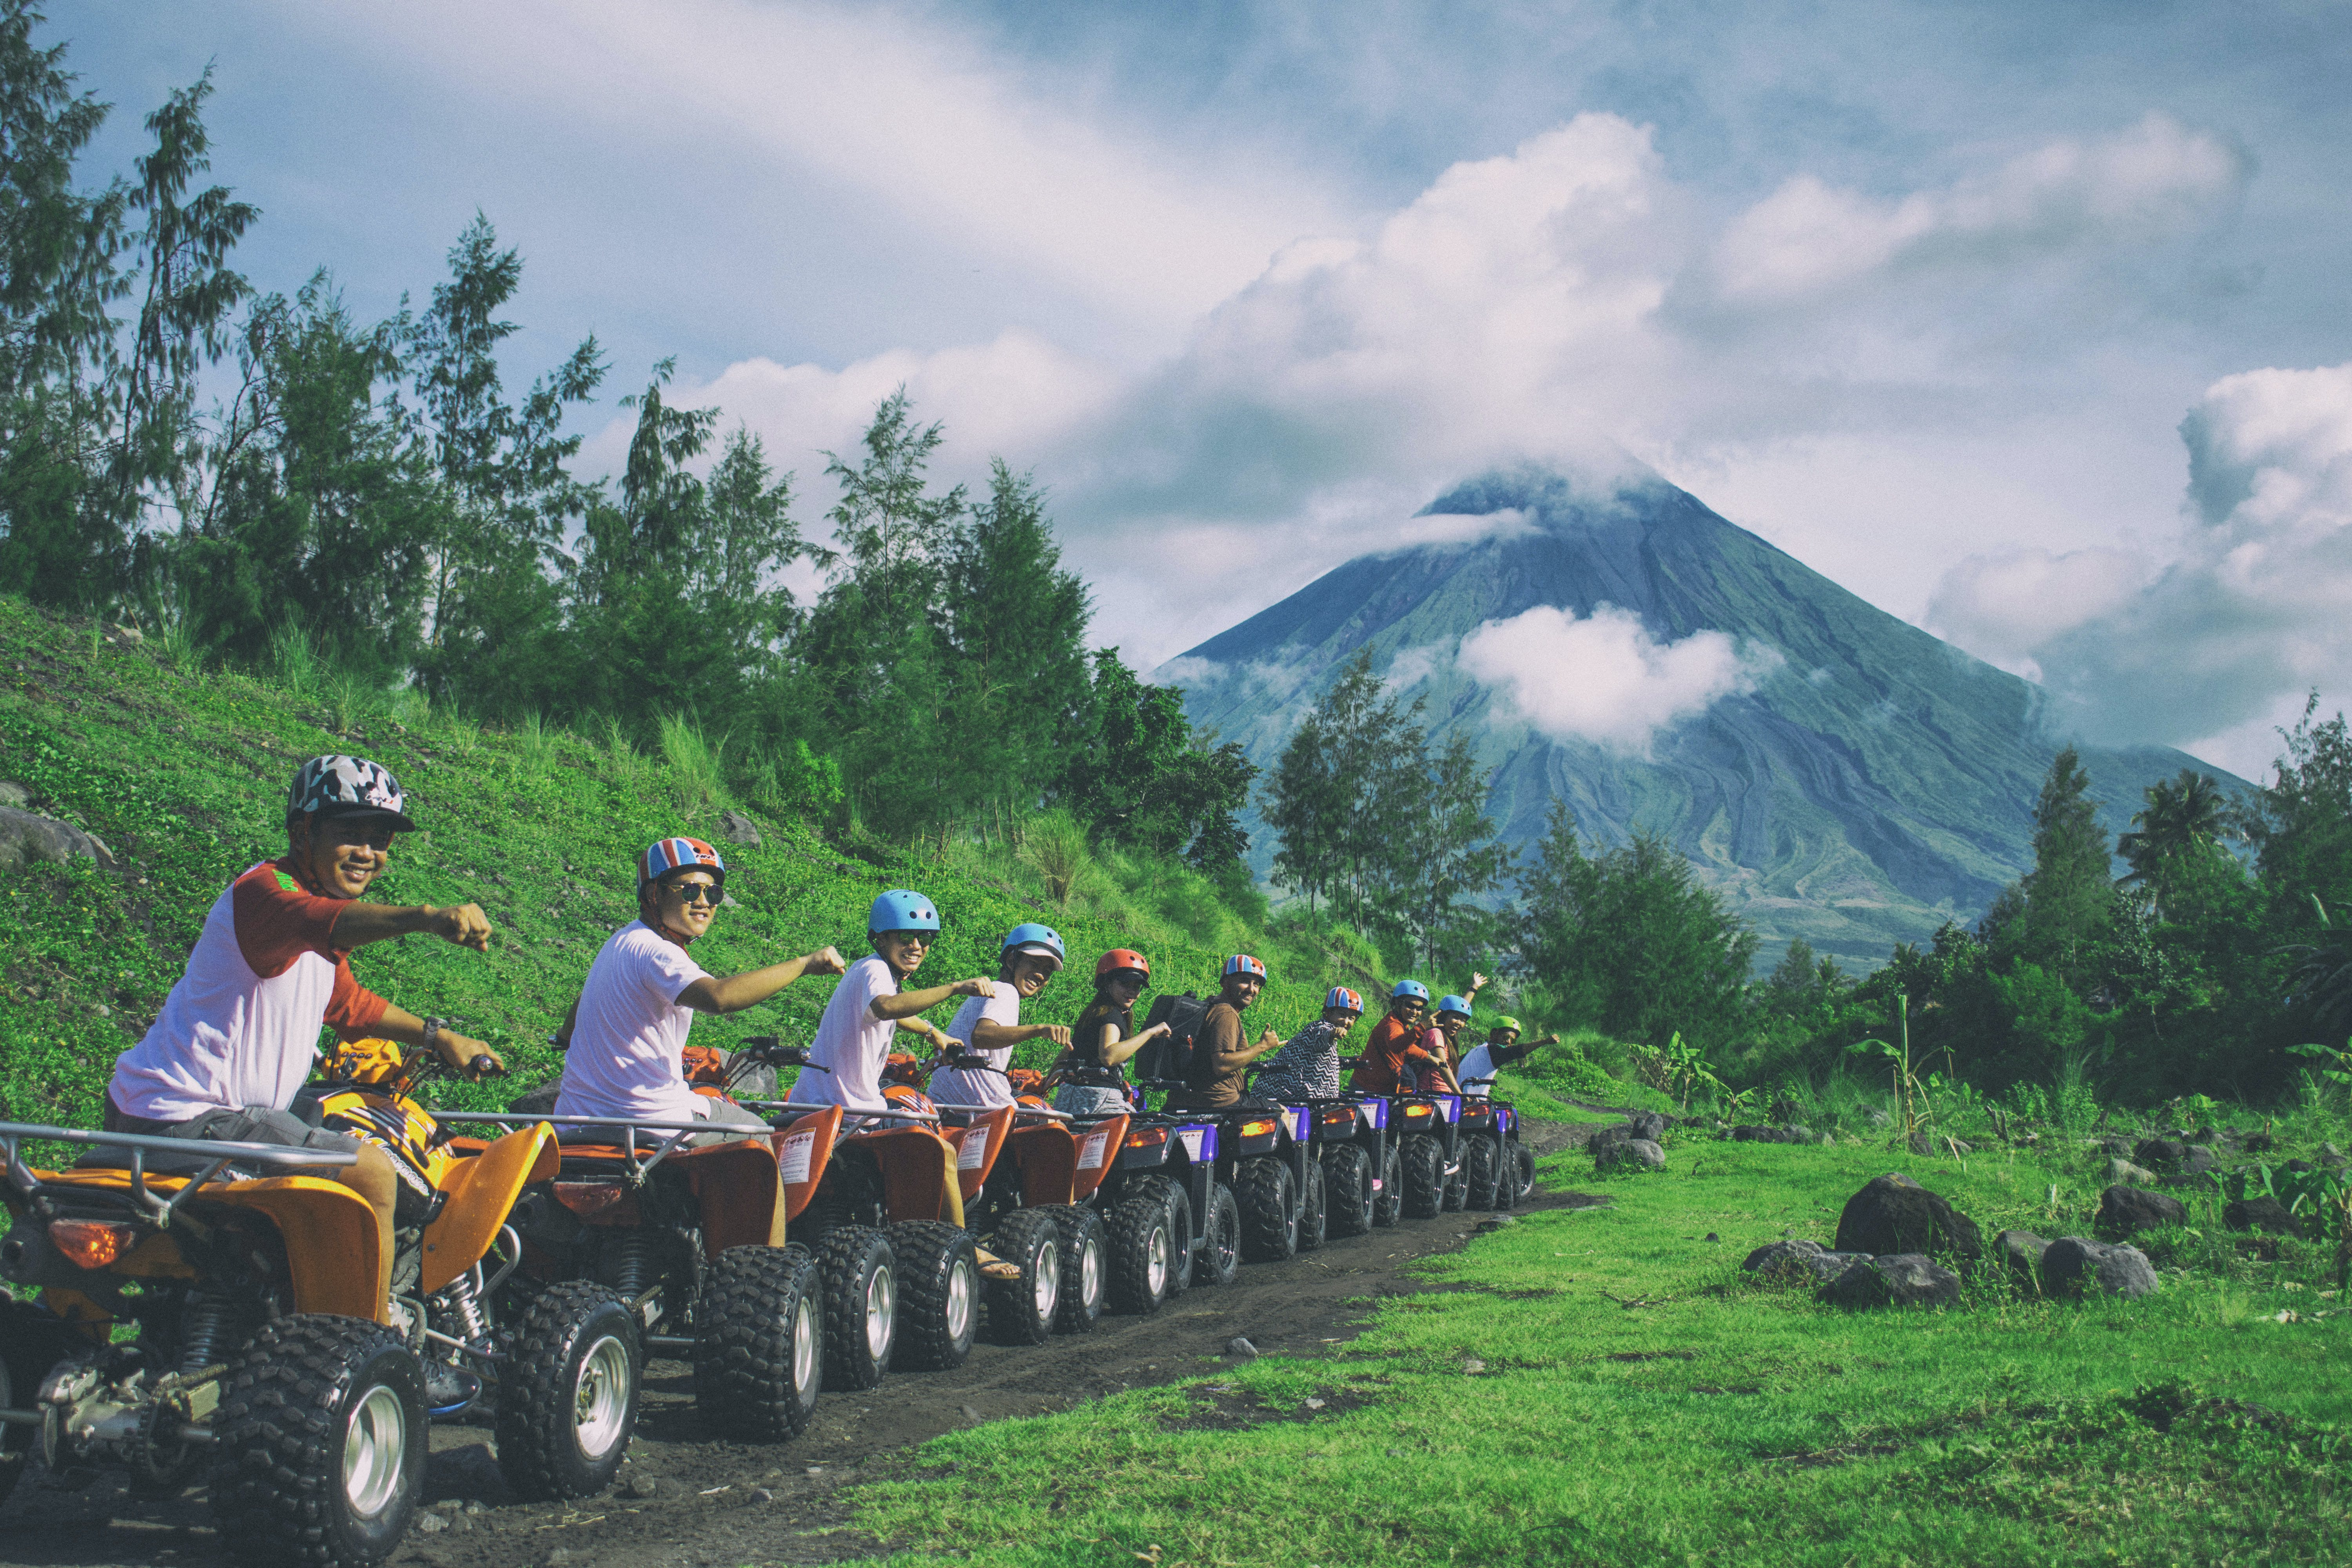 Line Of Men Riding On All Terrain Vehicles Holding Out Hand In A Fist